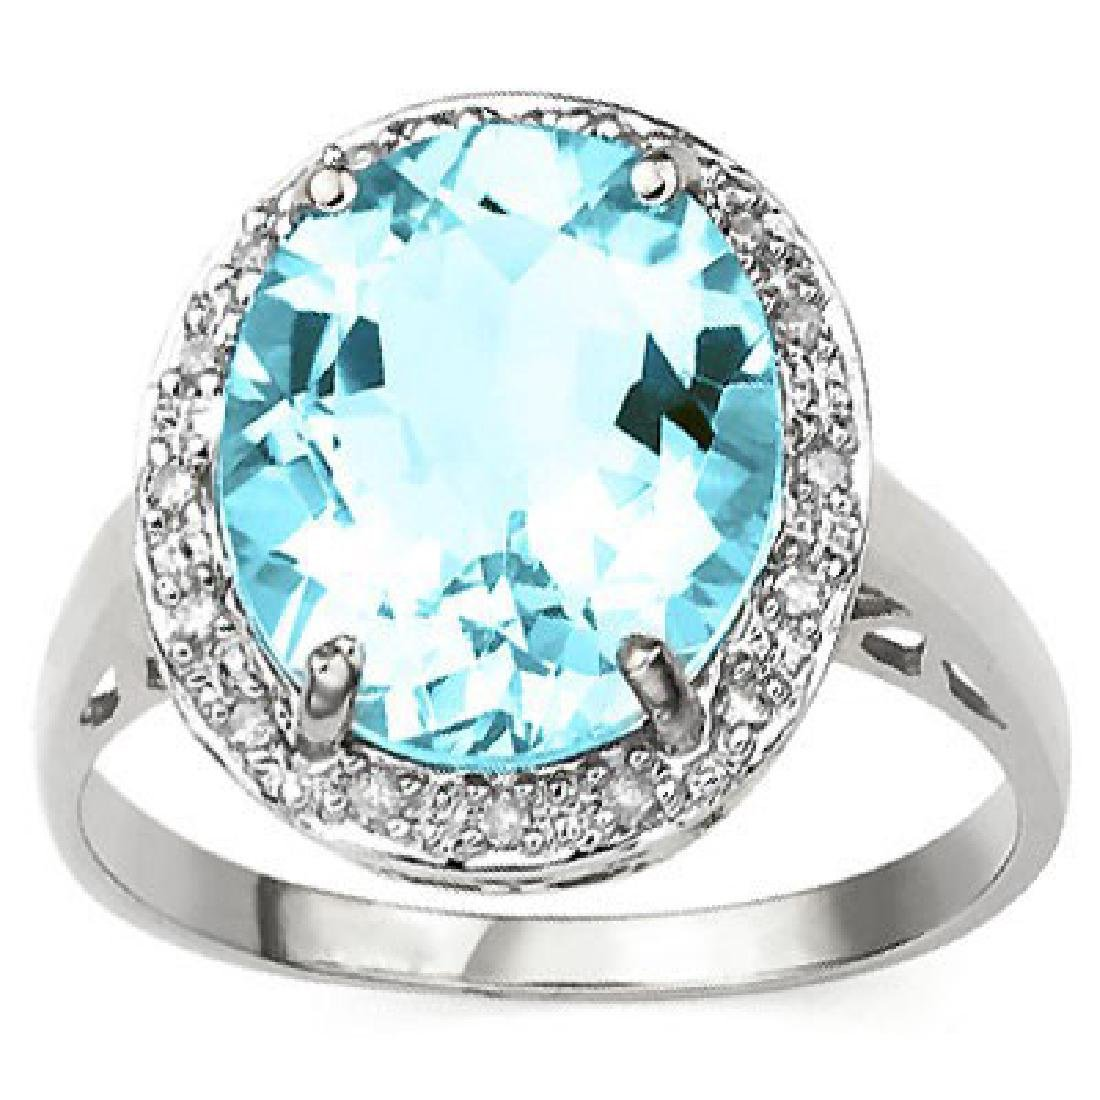 BABY BLUE TOPAZ 6CT OVAL CUT STERLING SOLITAIRE RG